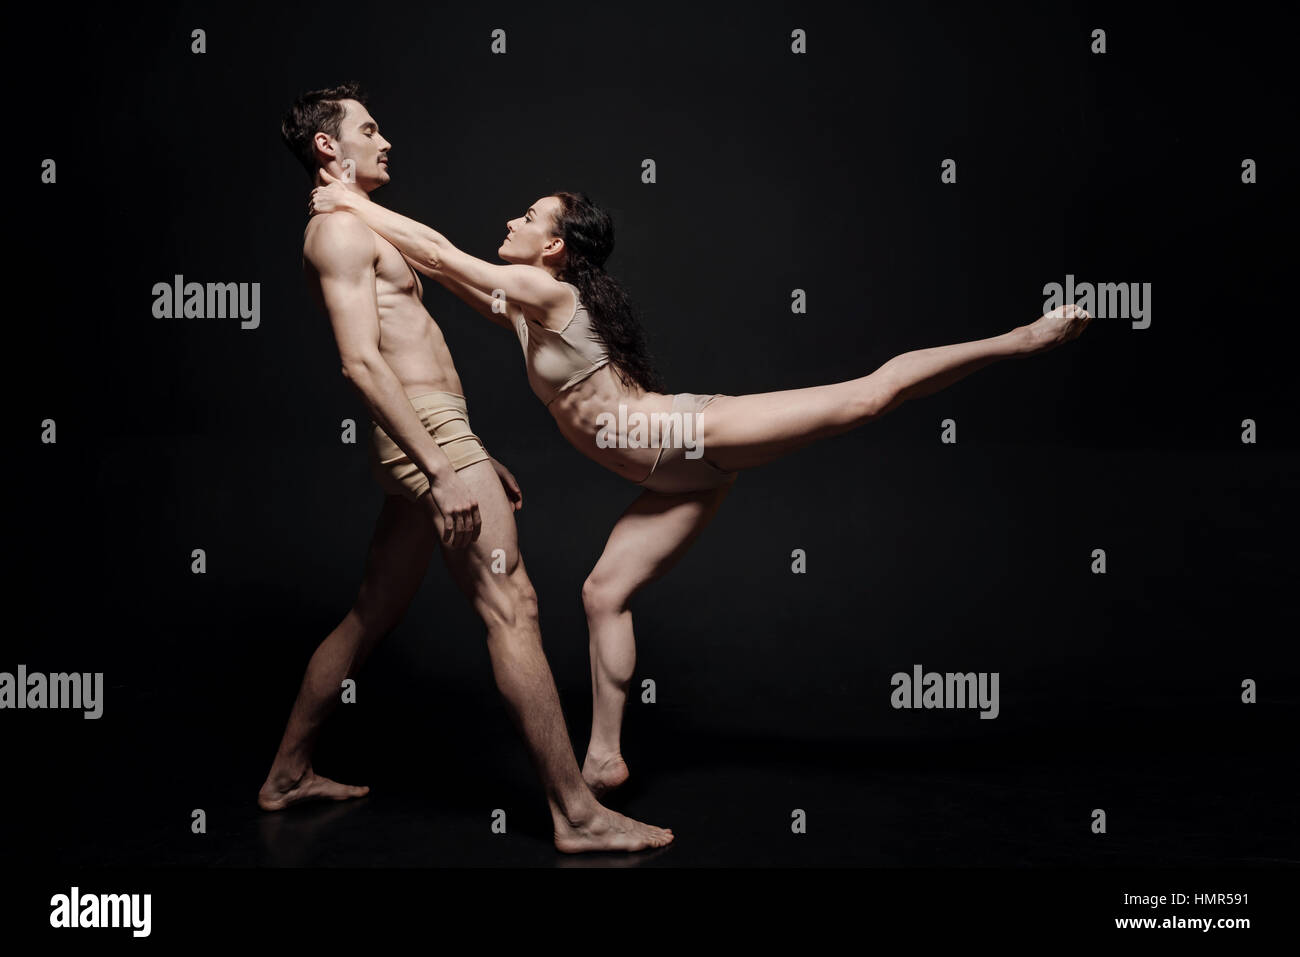 Beautiful young dance couple taking part in the art performance - Stock Image